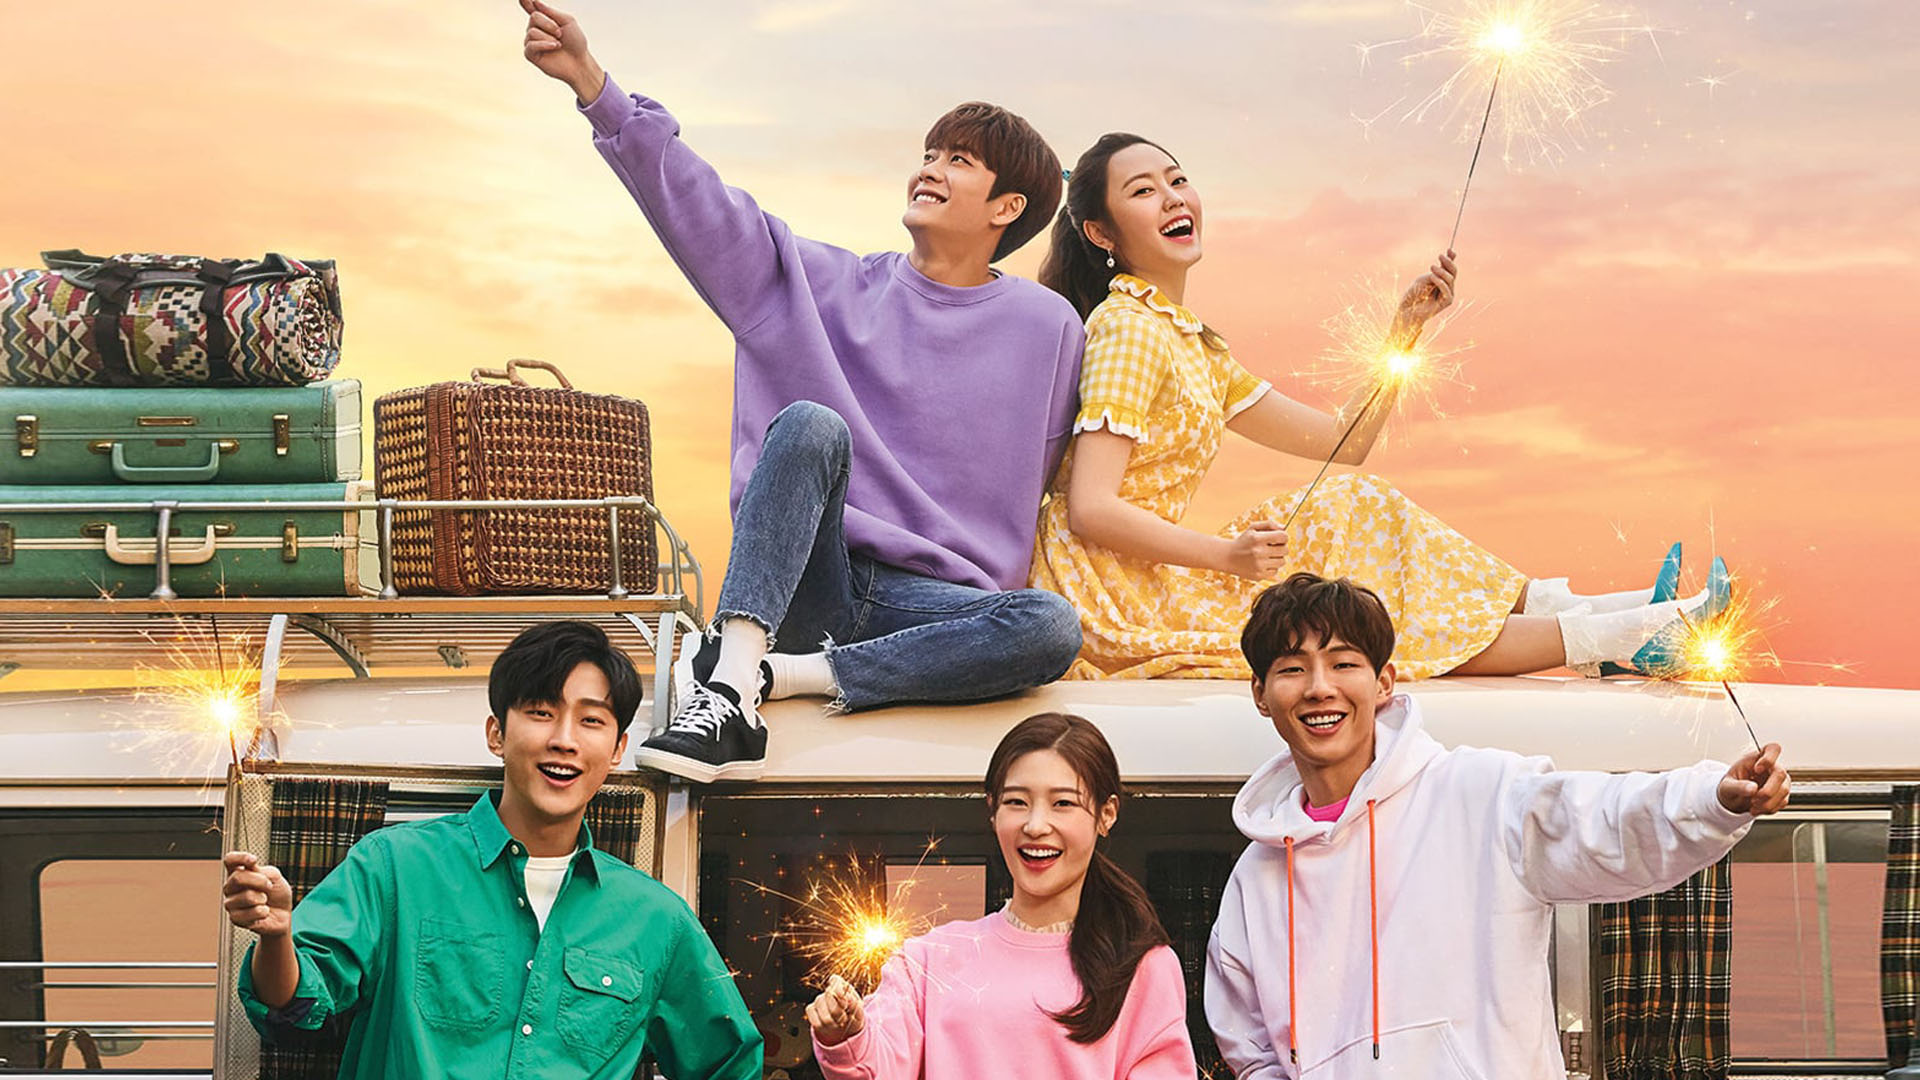 Good Ol' Review: A Hopeful Slice of Life in My First First Love